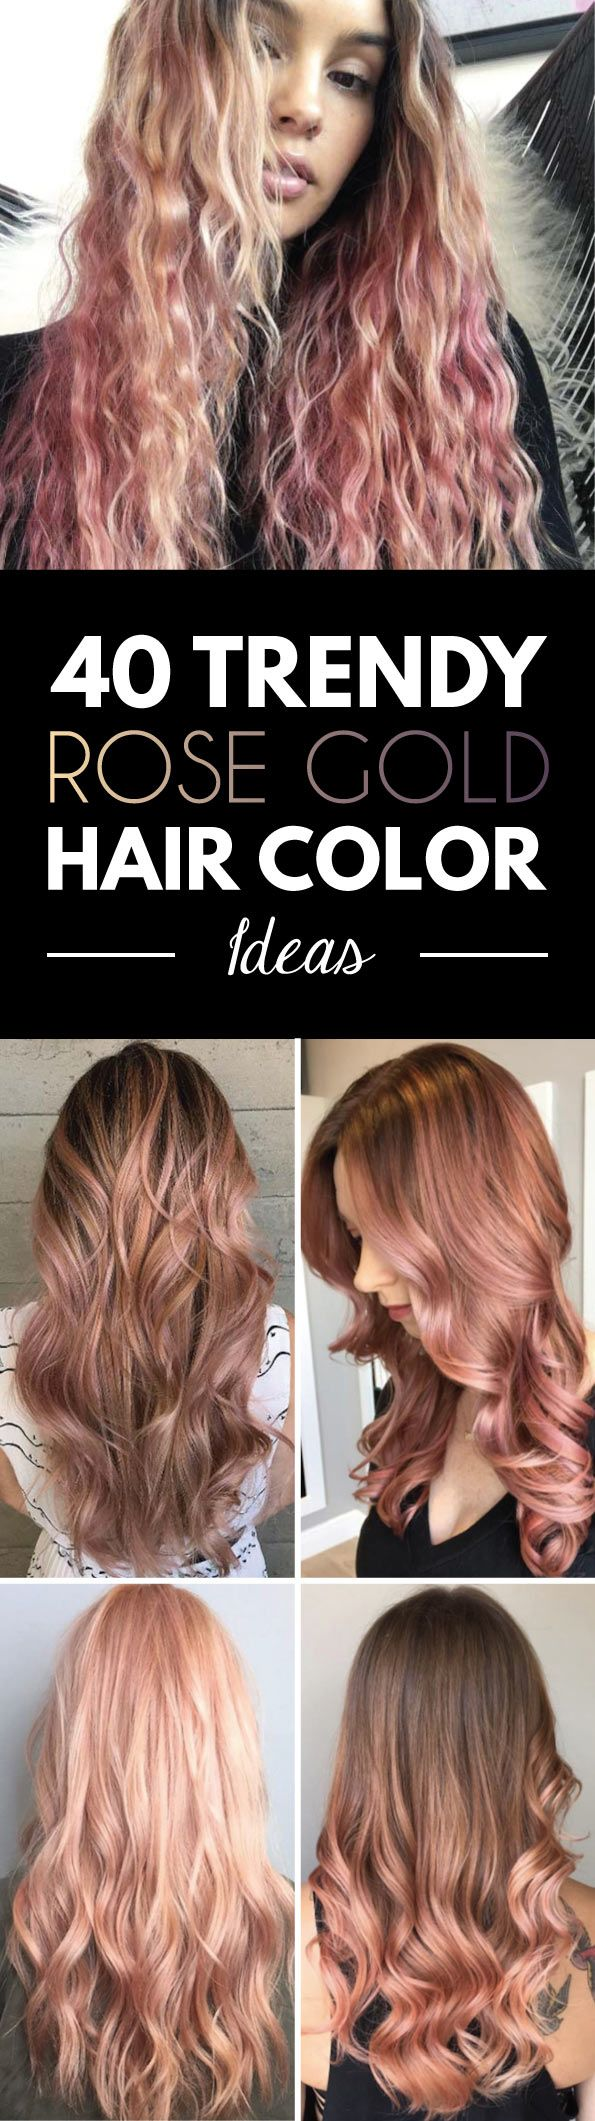 best airudous images on pinterest hairstyles hair and braids